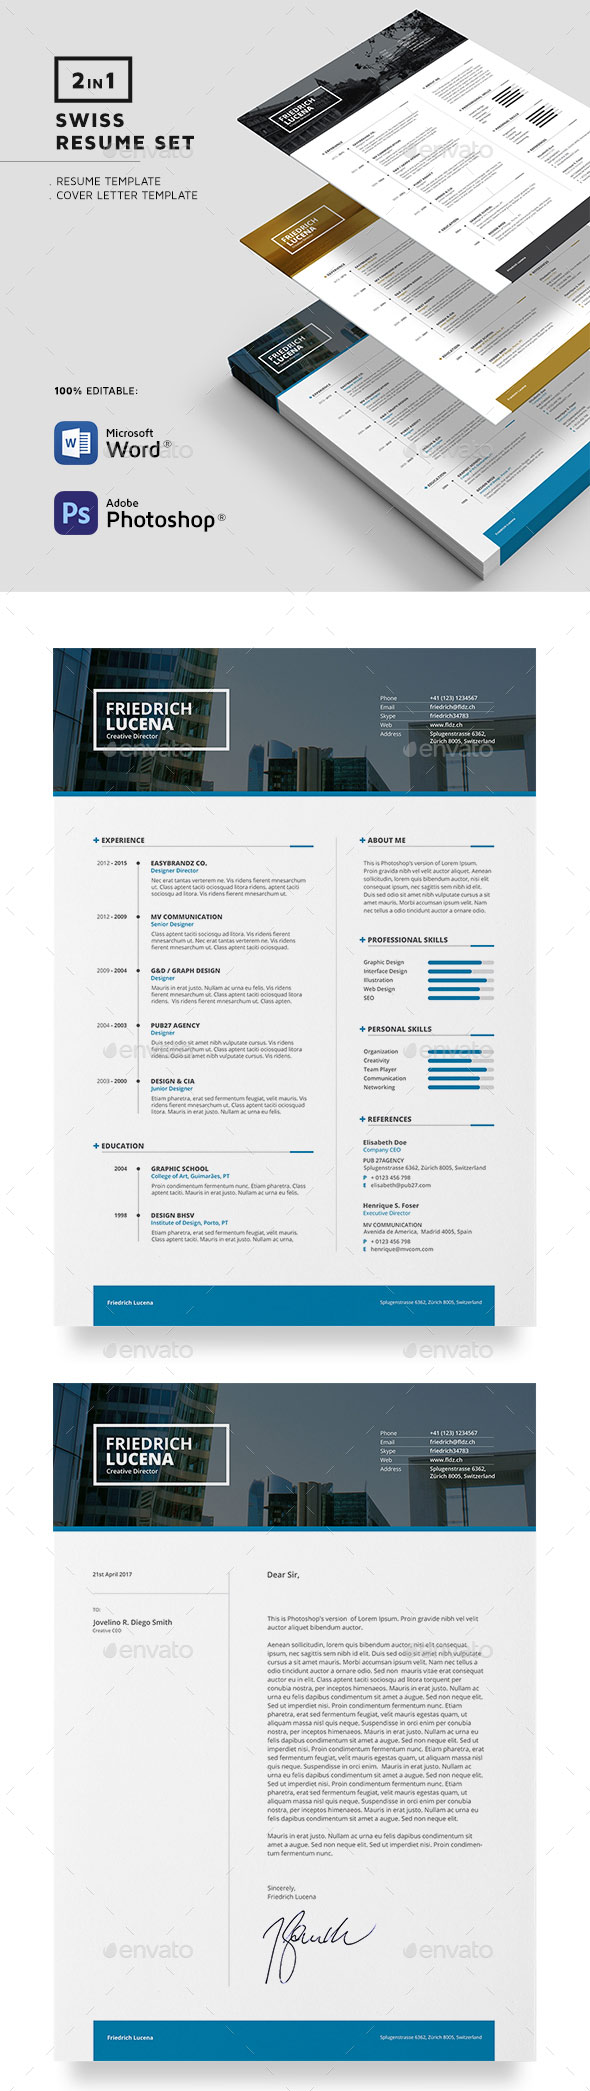 swiss resume template with organize resume sections and formatting - How To Organize A Resume